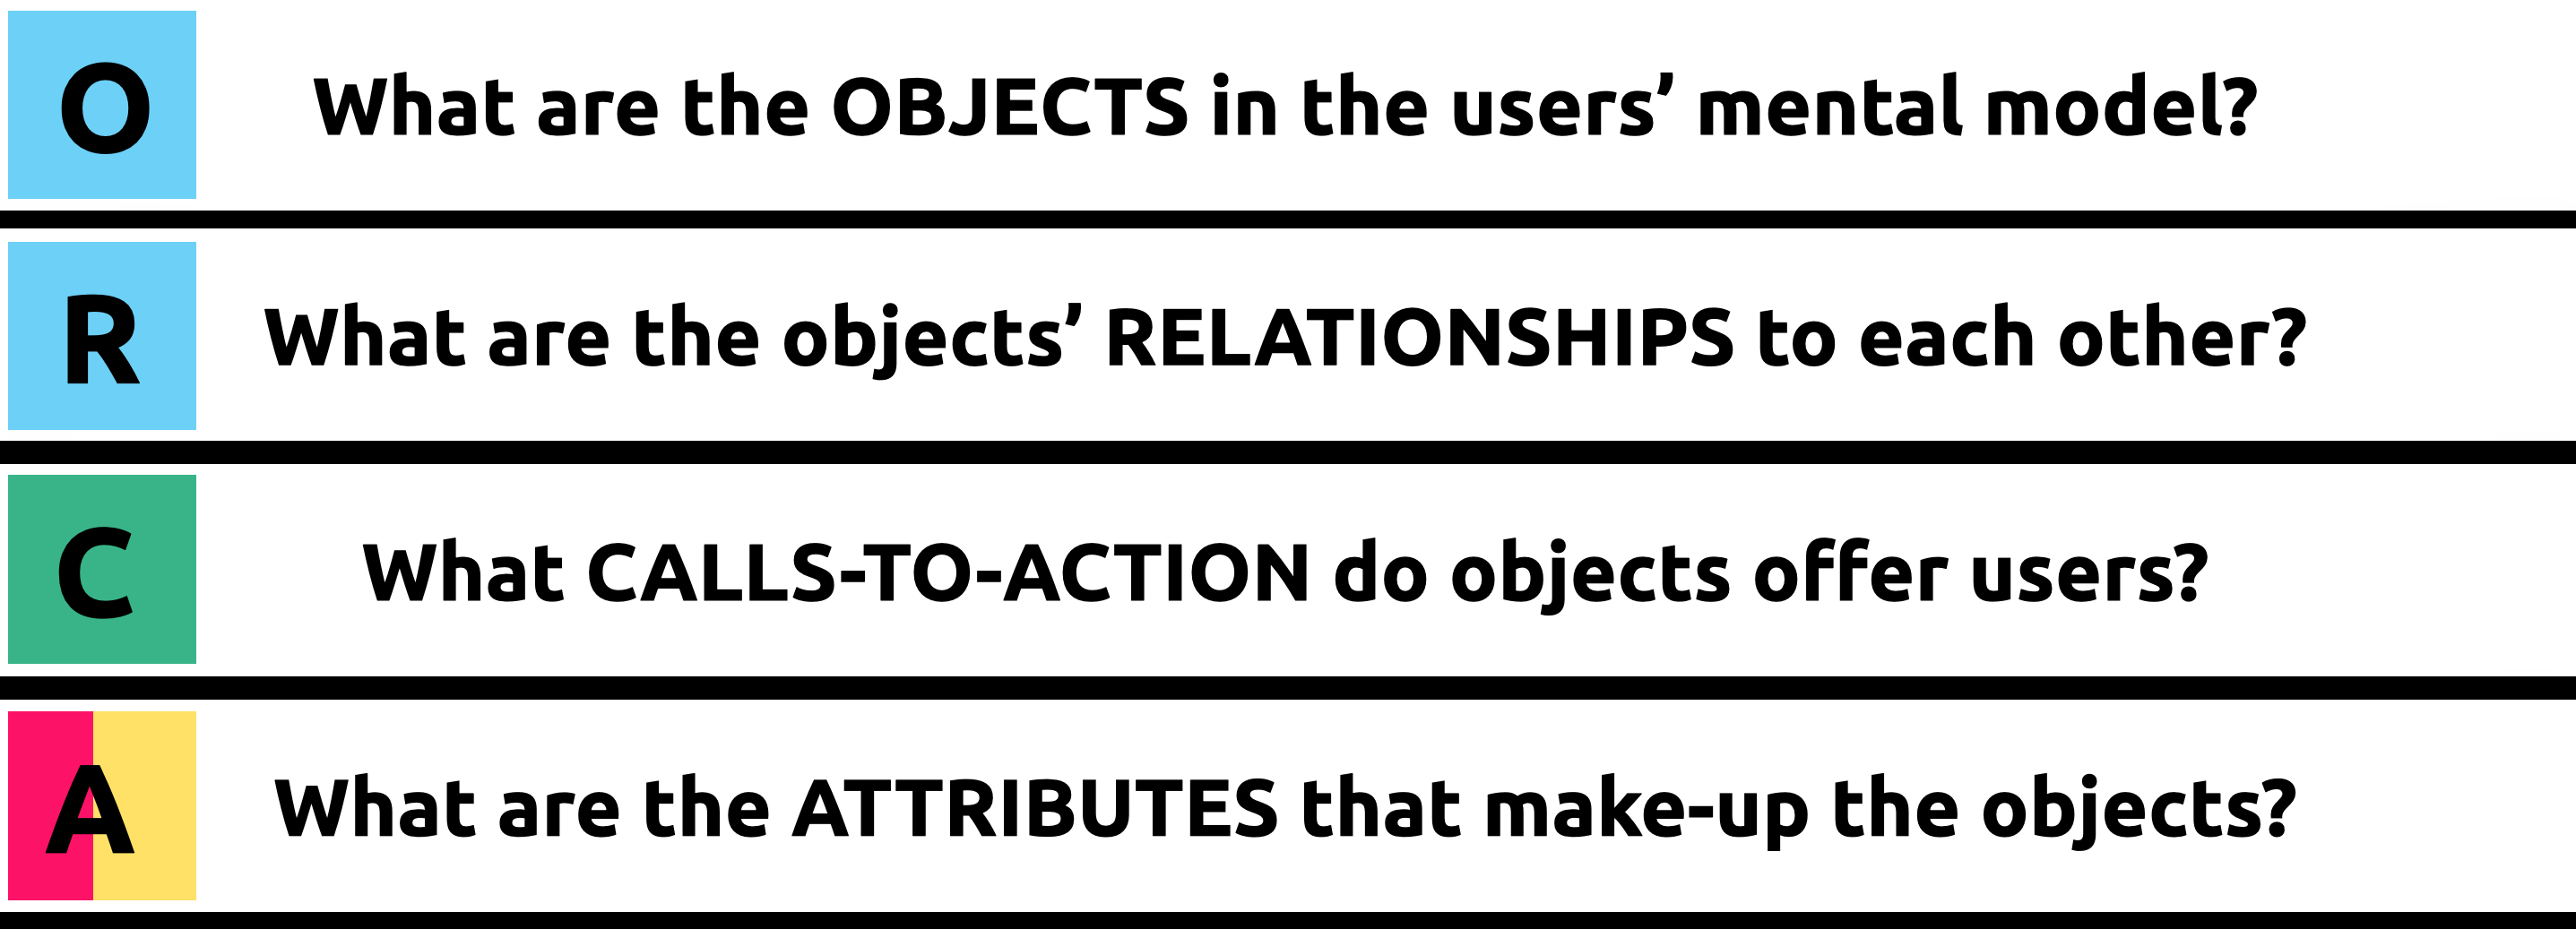 The four questions: What are the objects in the users' mental model? What are the relationships between these objects?  What calls-to-action do each object offer users? What are the attributes that make up each object?